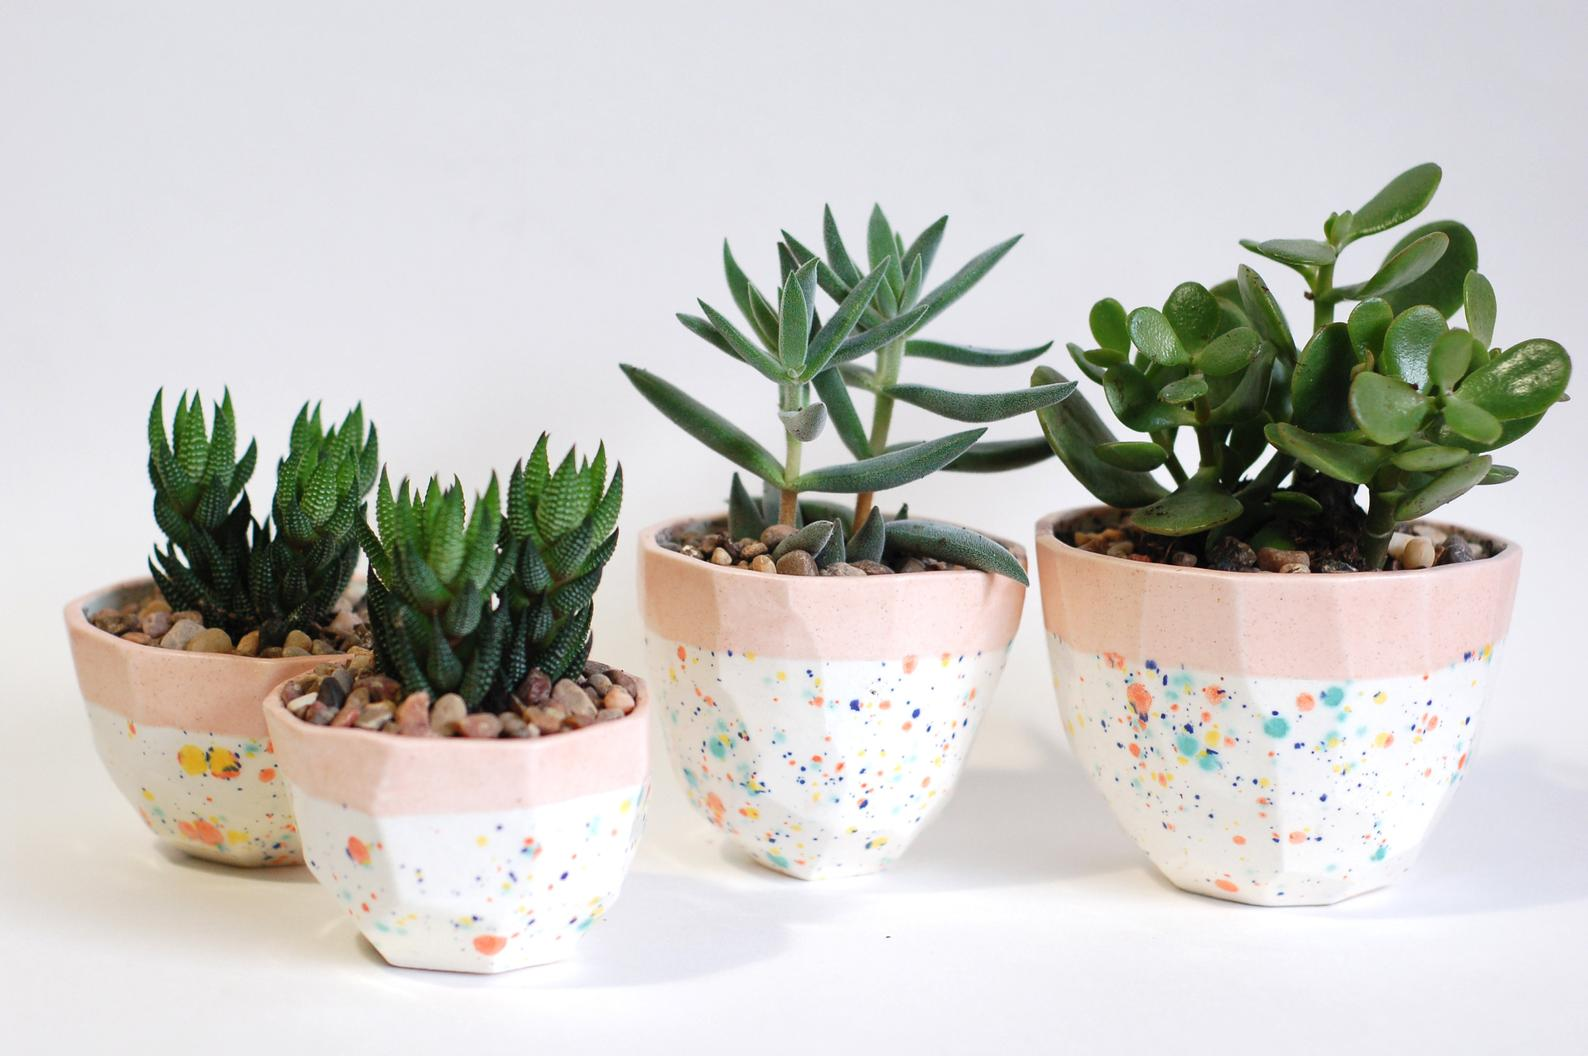 faceted peach and sprinkles planters of 4 sizes with succulents in them